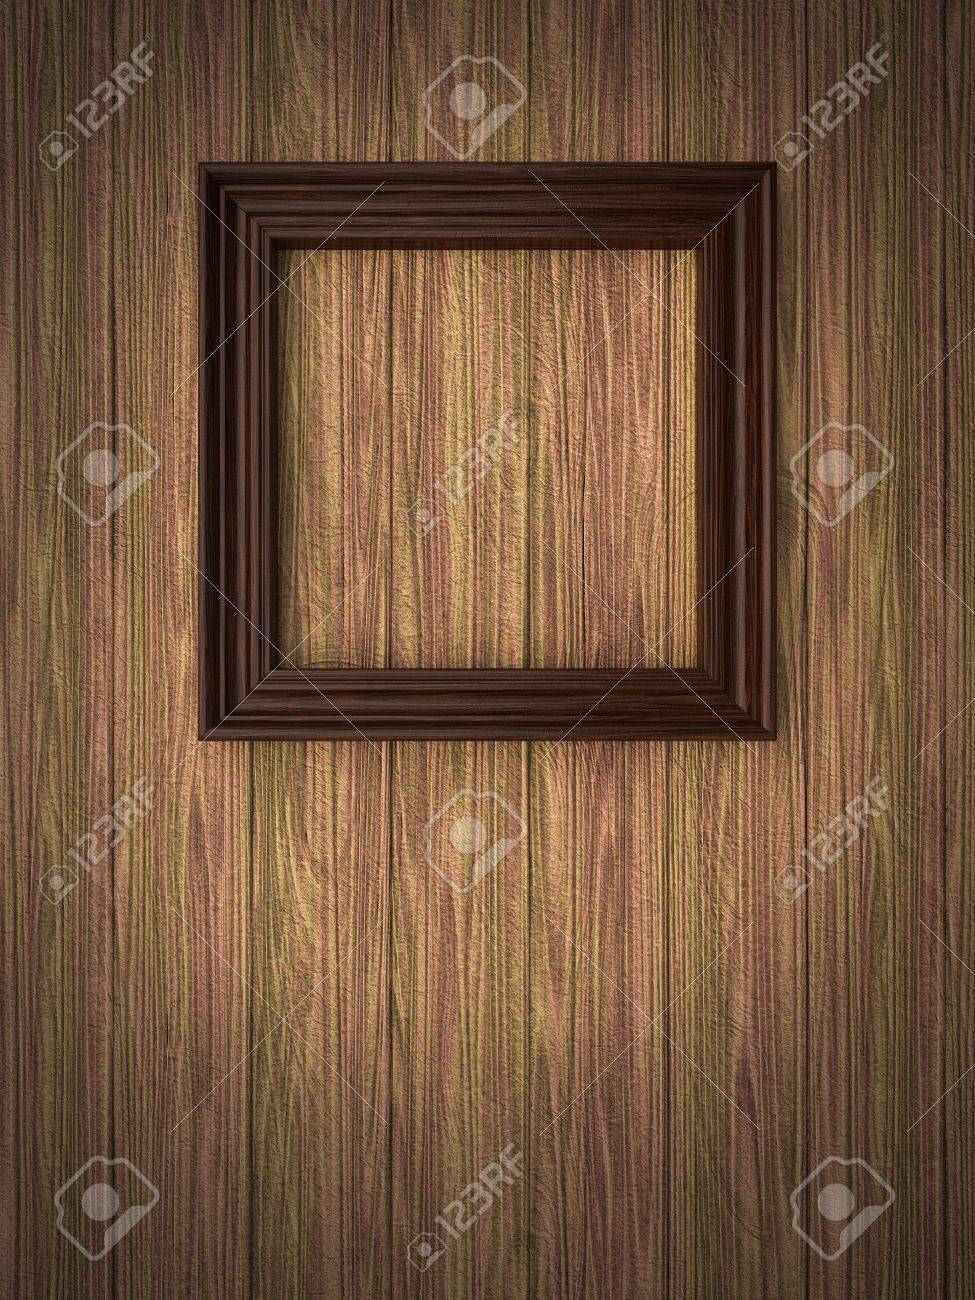 Wood Frame On Paneling Stock Photo, Picture And Royalty Free Image ...